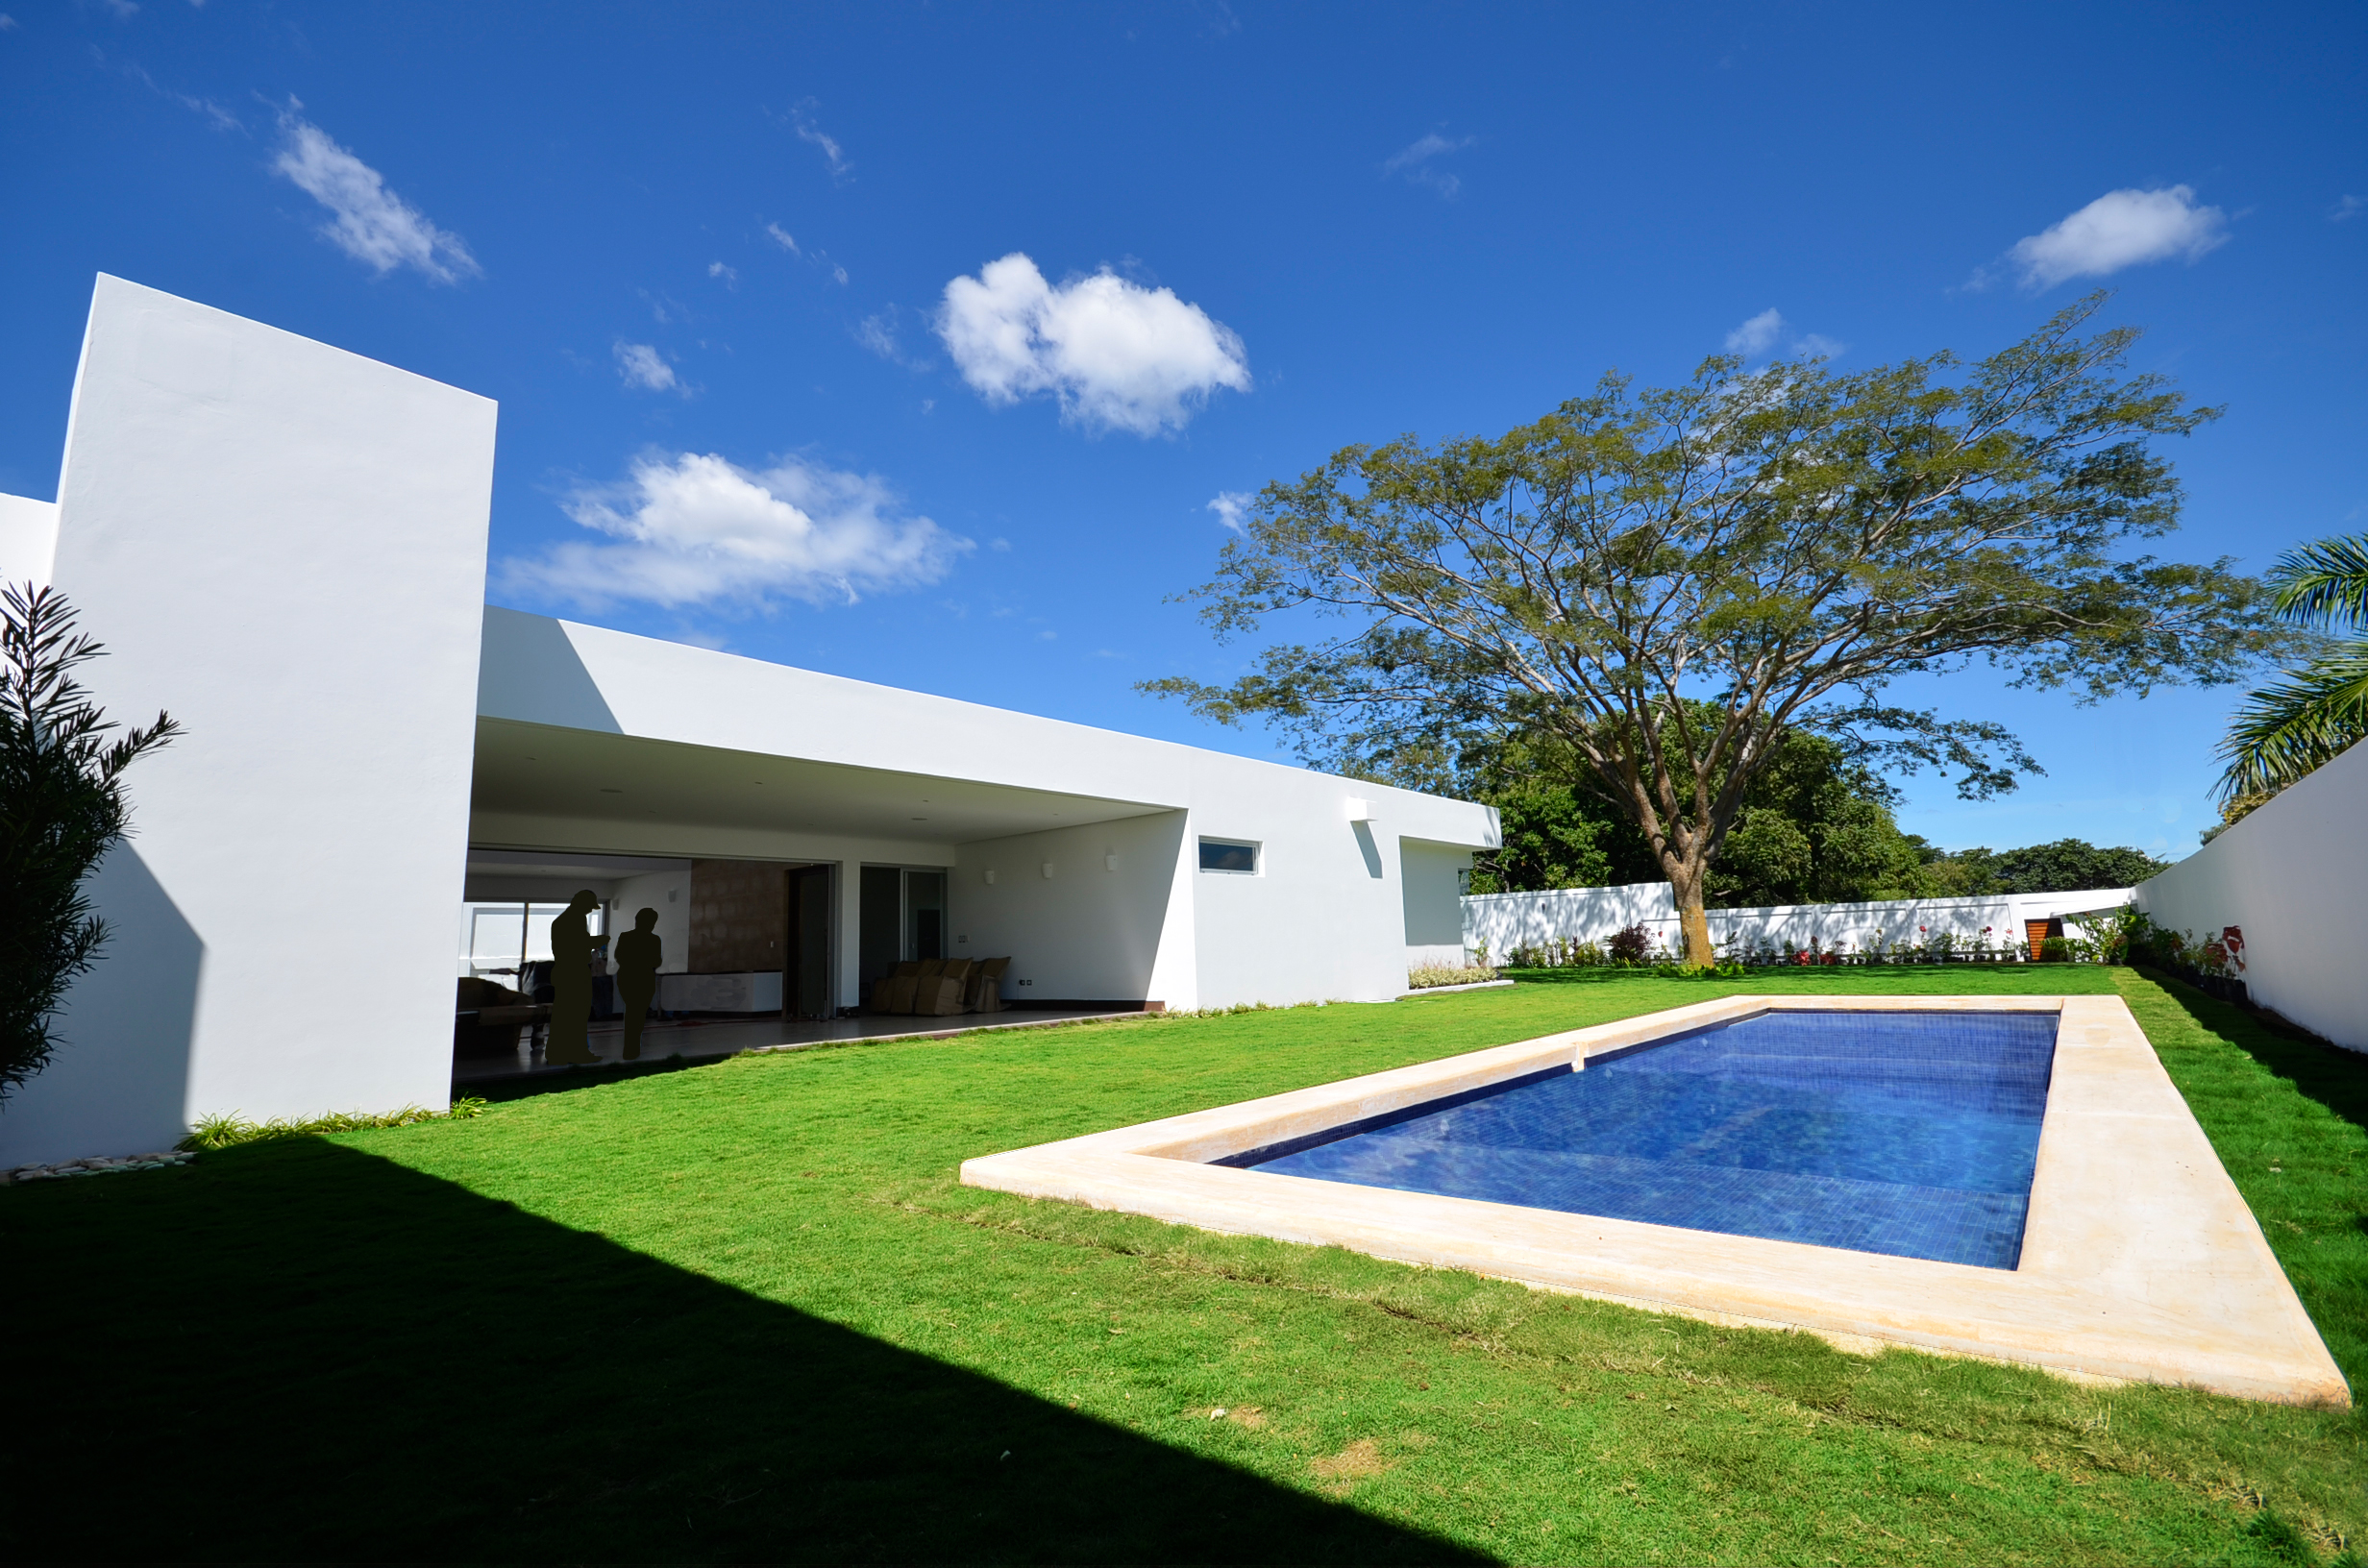 Simple pool, architect design, EL Mirador Residence